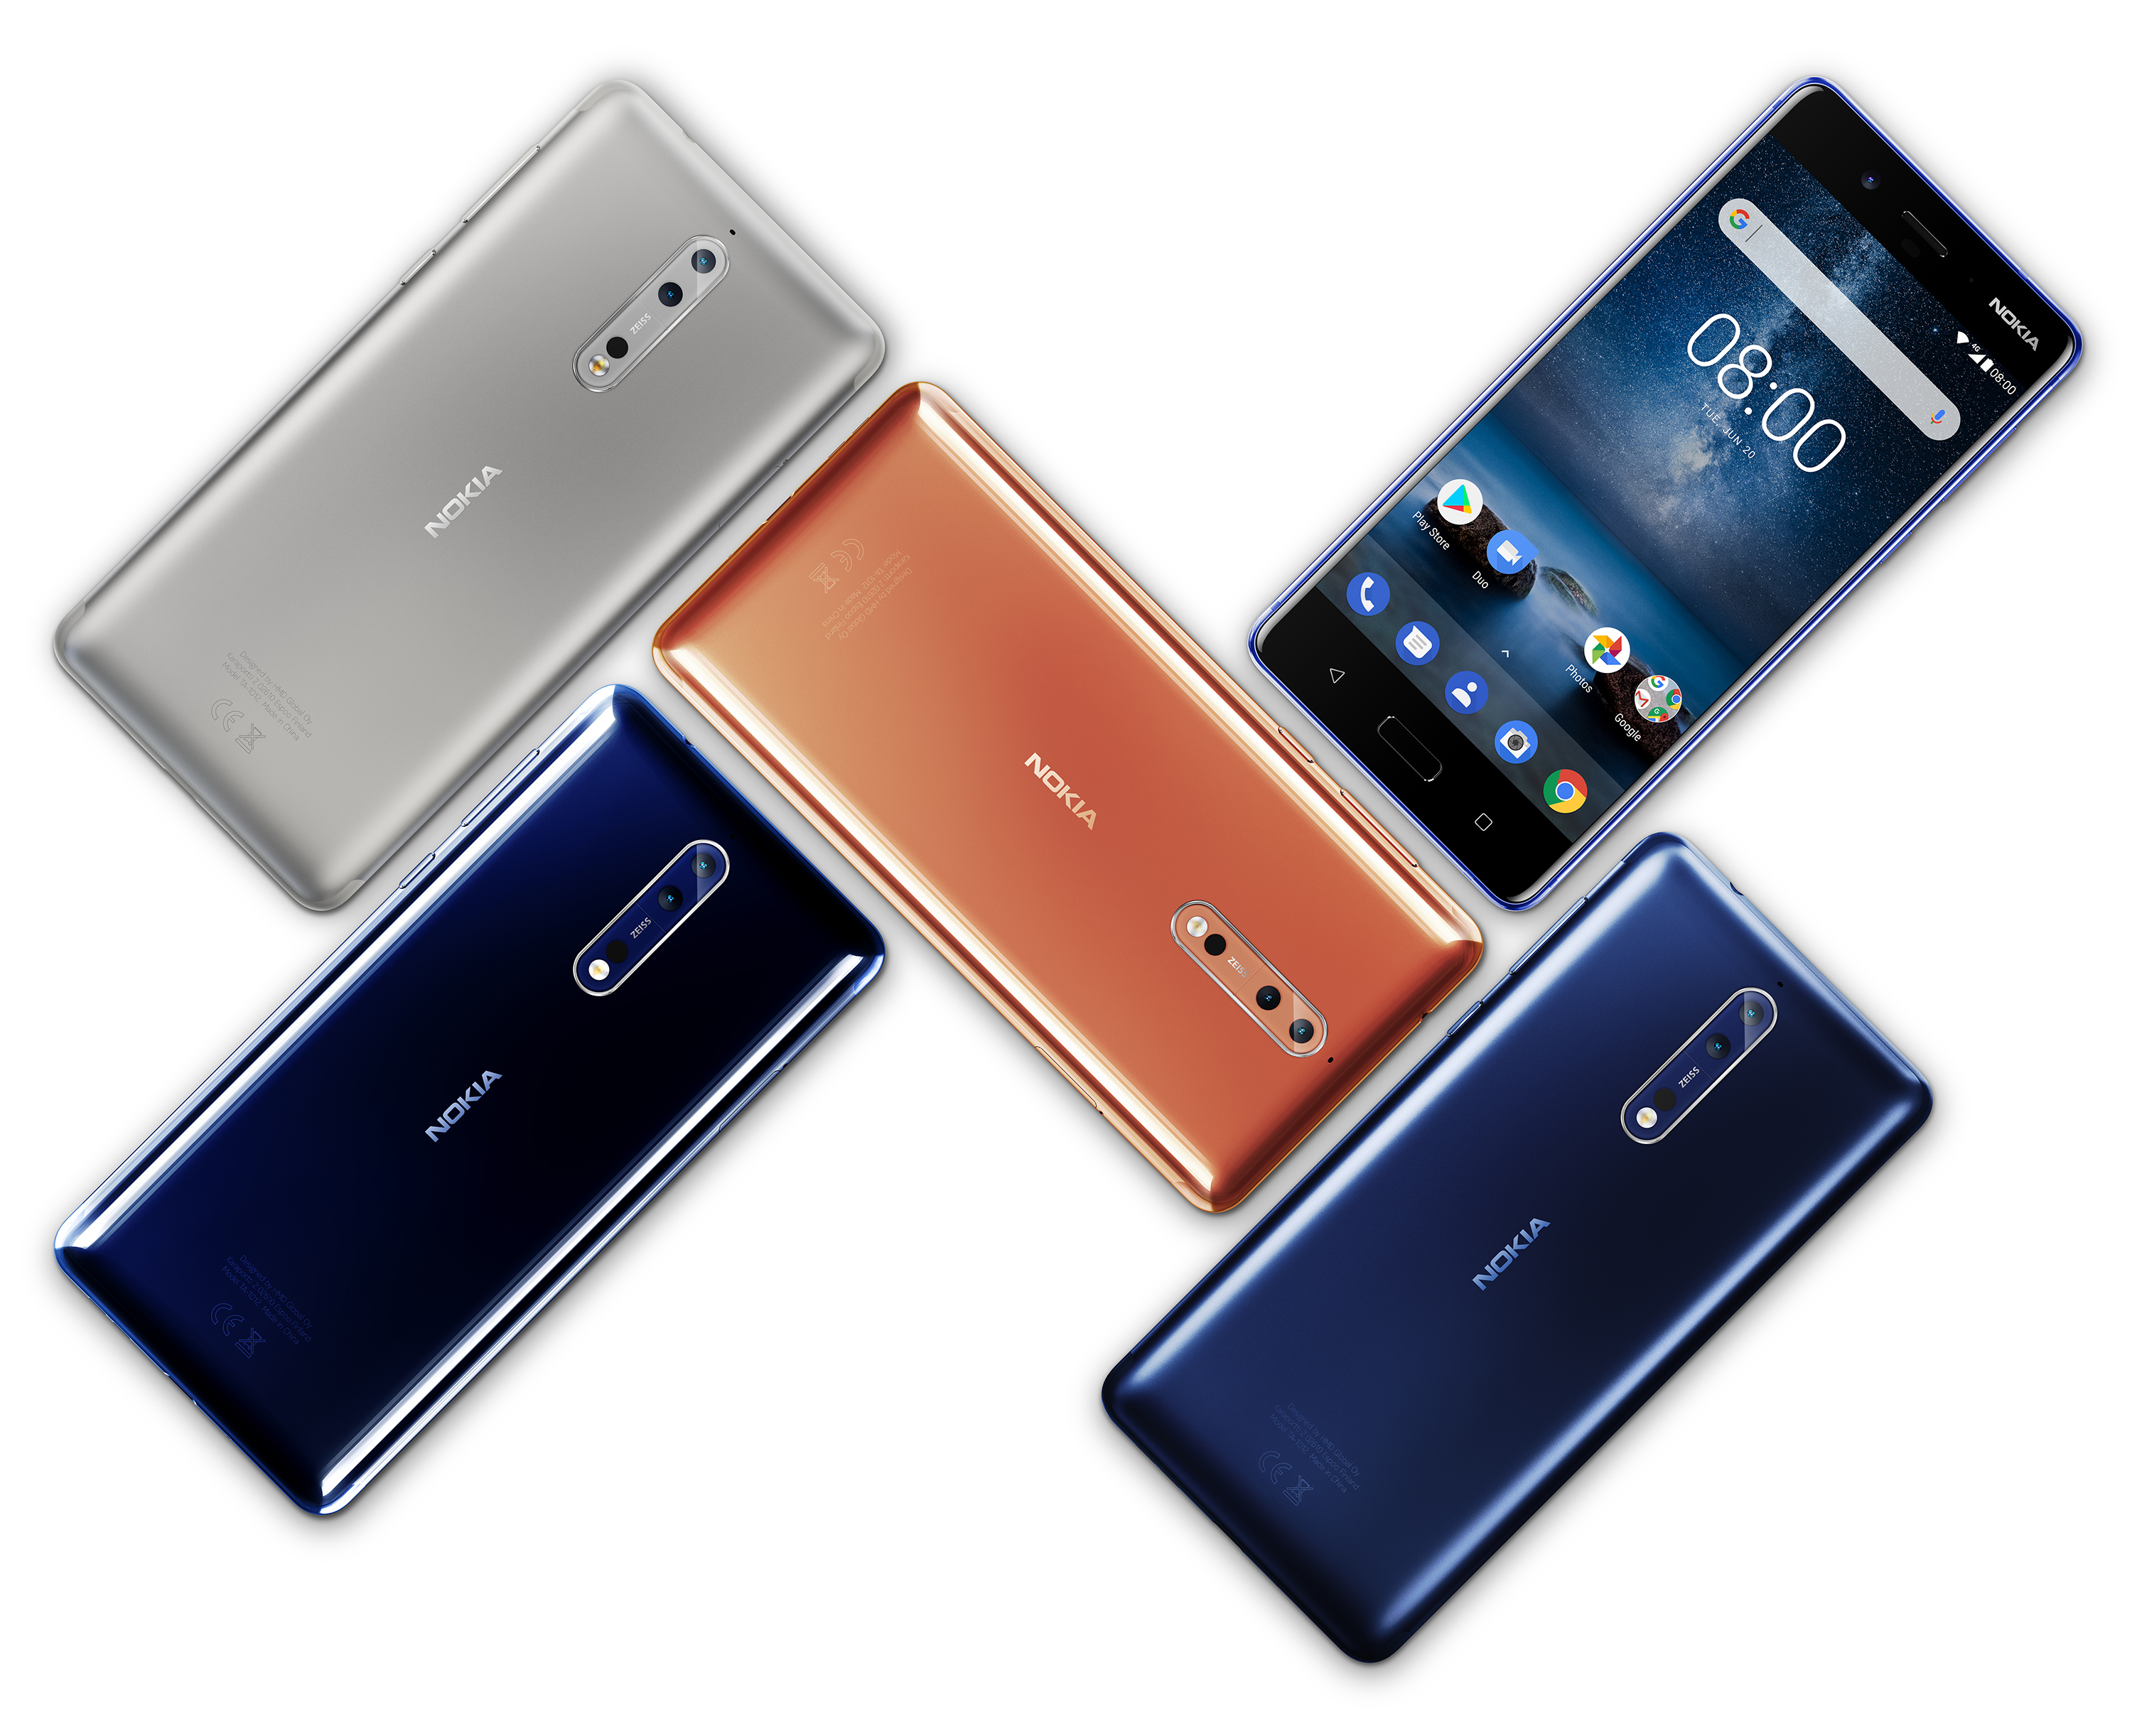 Image result for nokia 8 sirocco colors